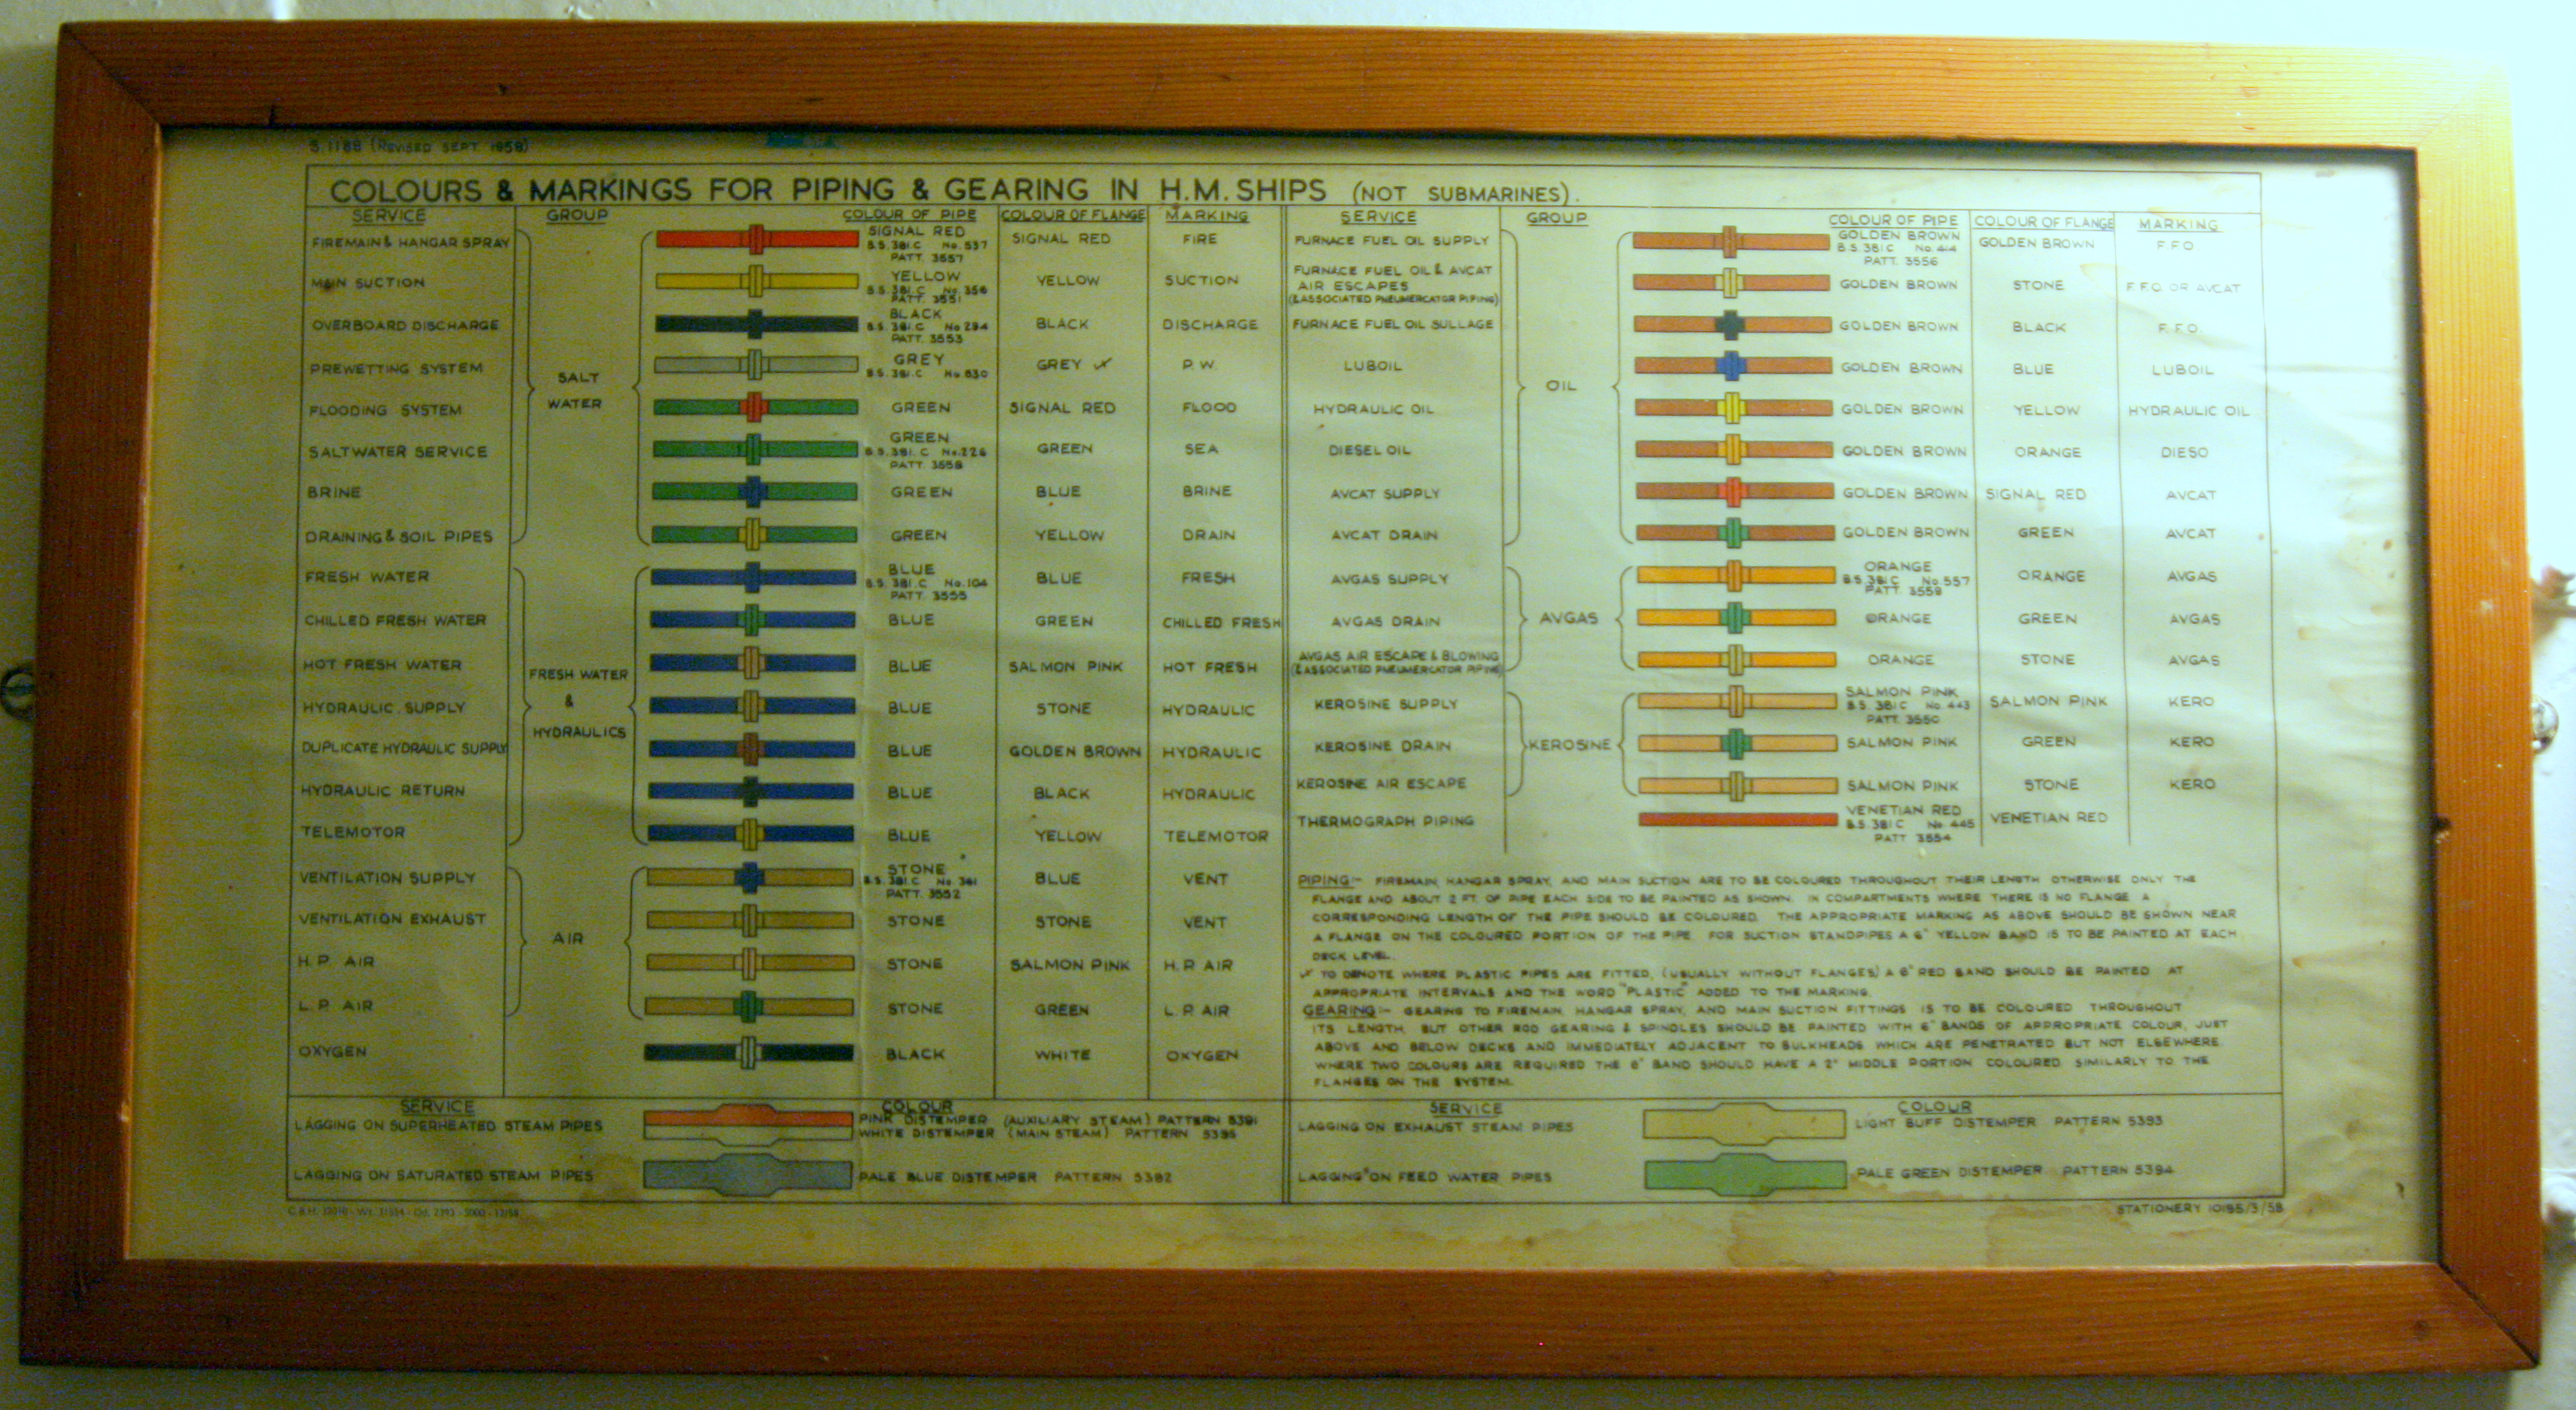 Wire Color Code Chart: HMS Belfast - Piping colour codes.jpg - Wikimedia Commons,Chart